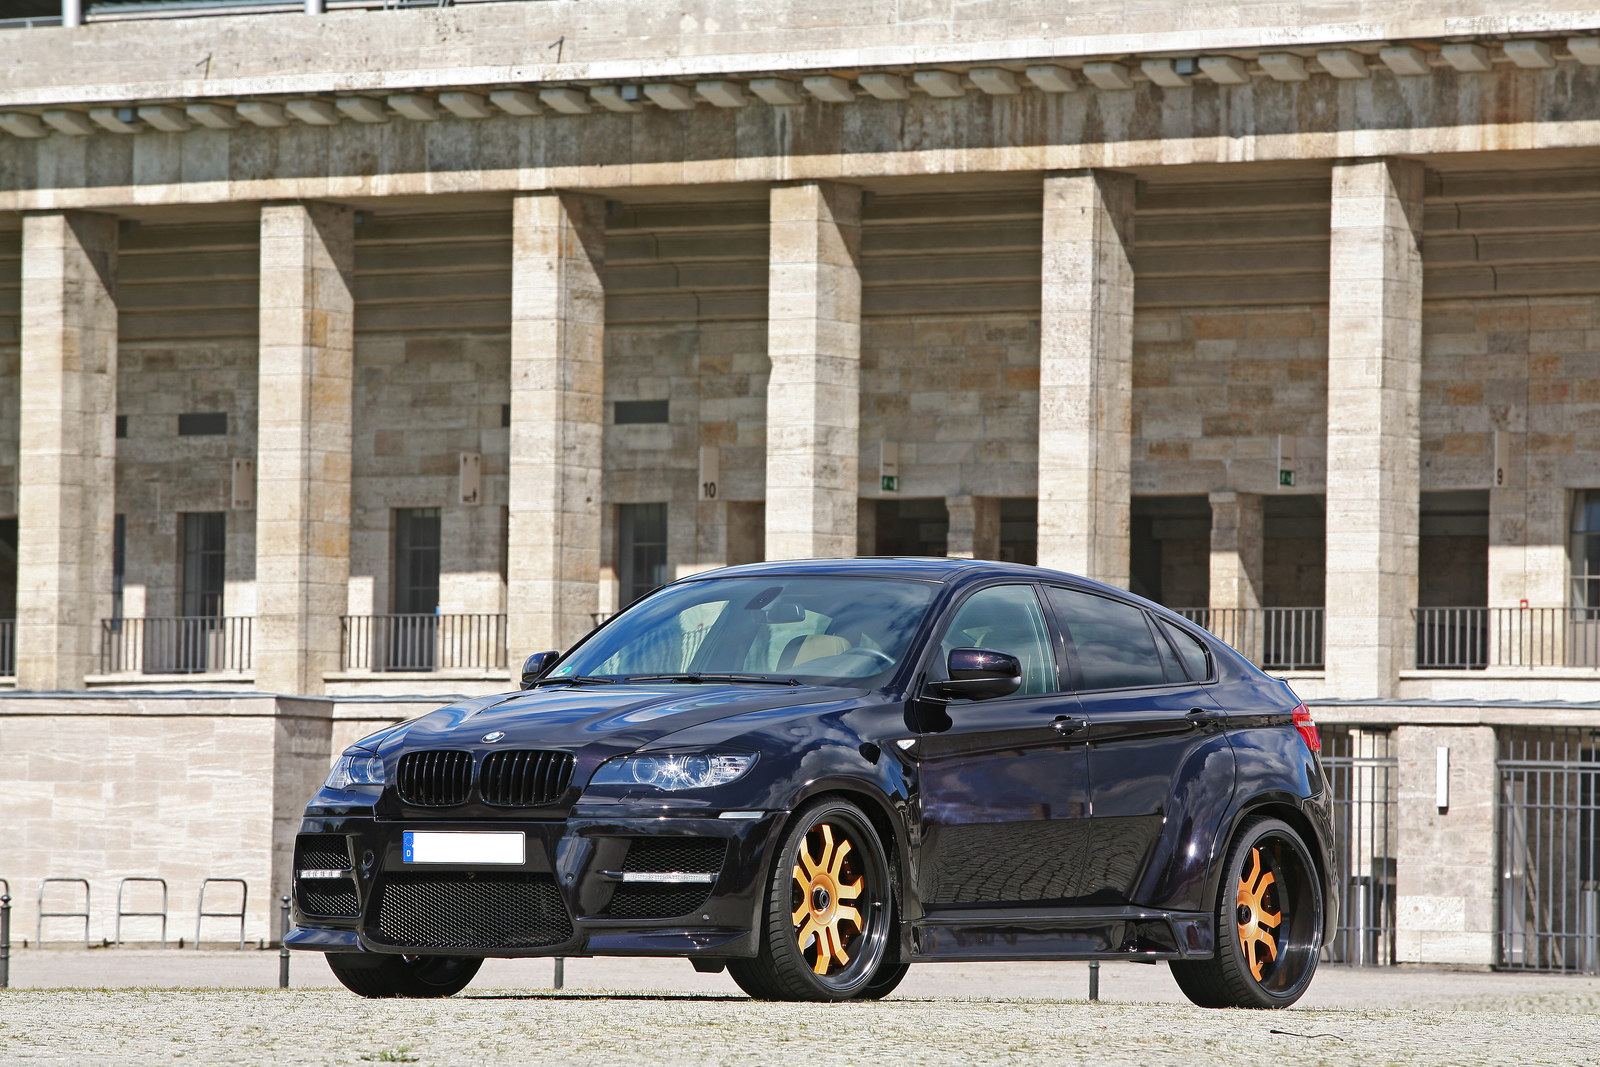 CLP Automotive BMW X6 Bruiser